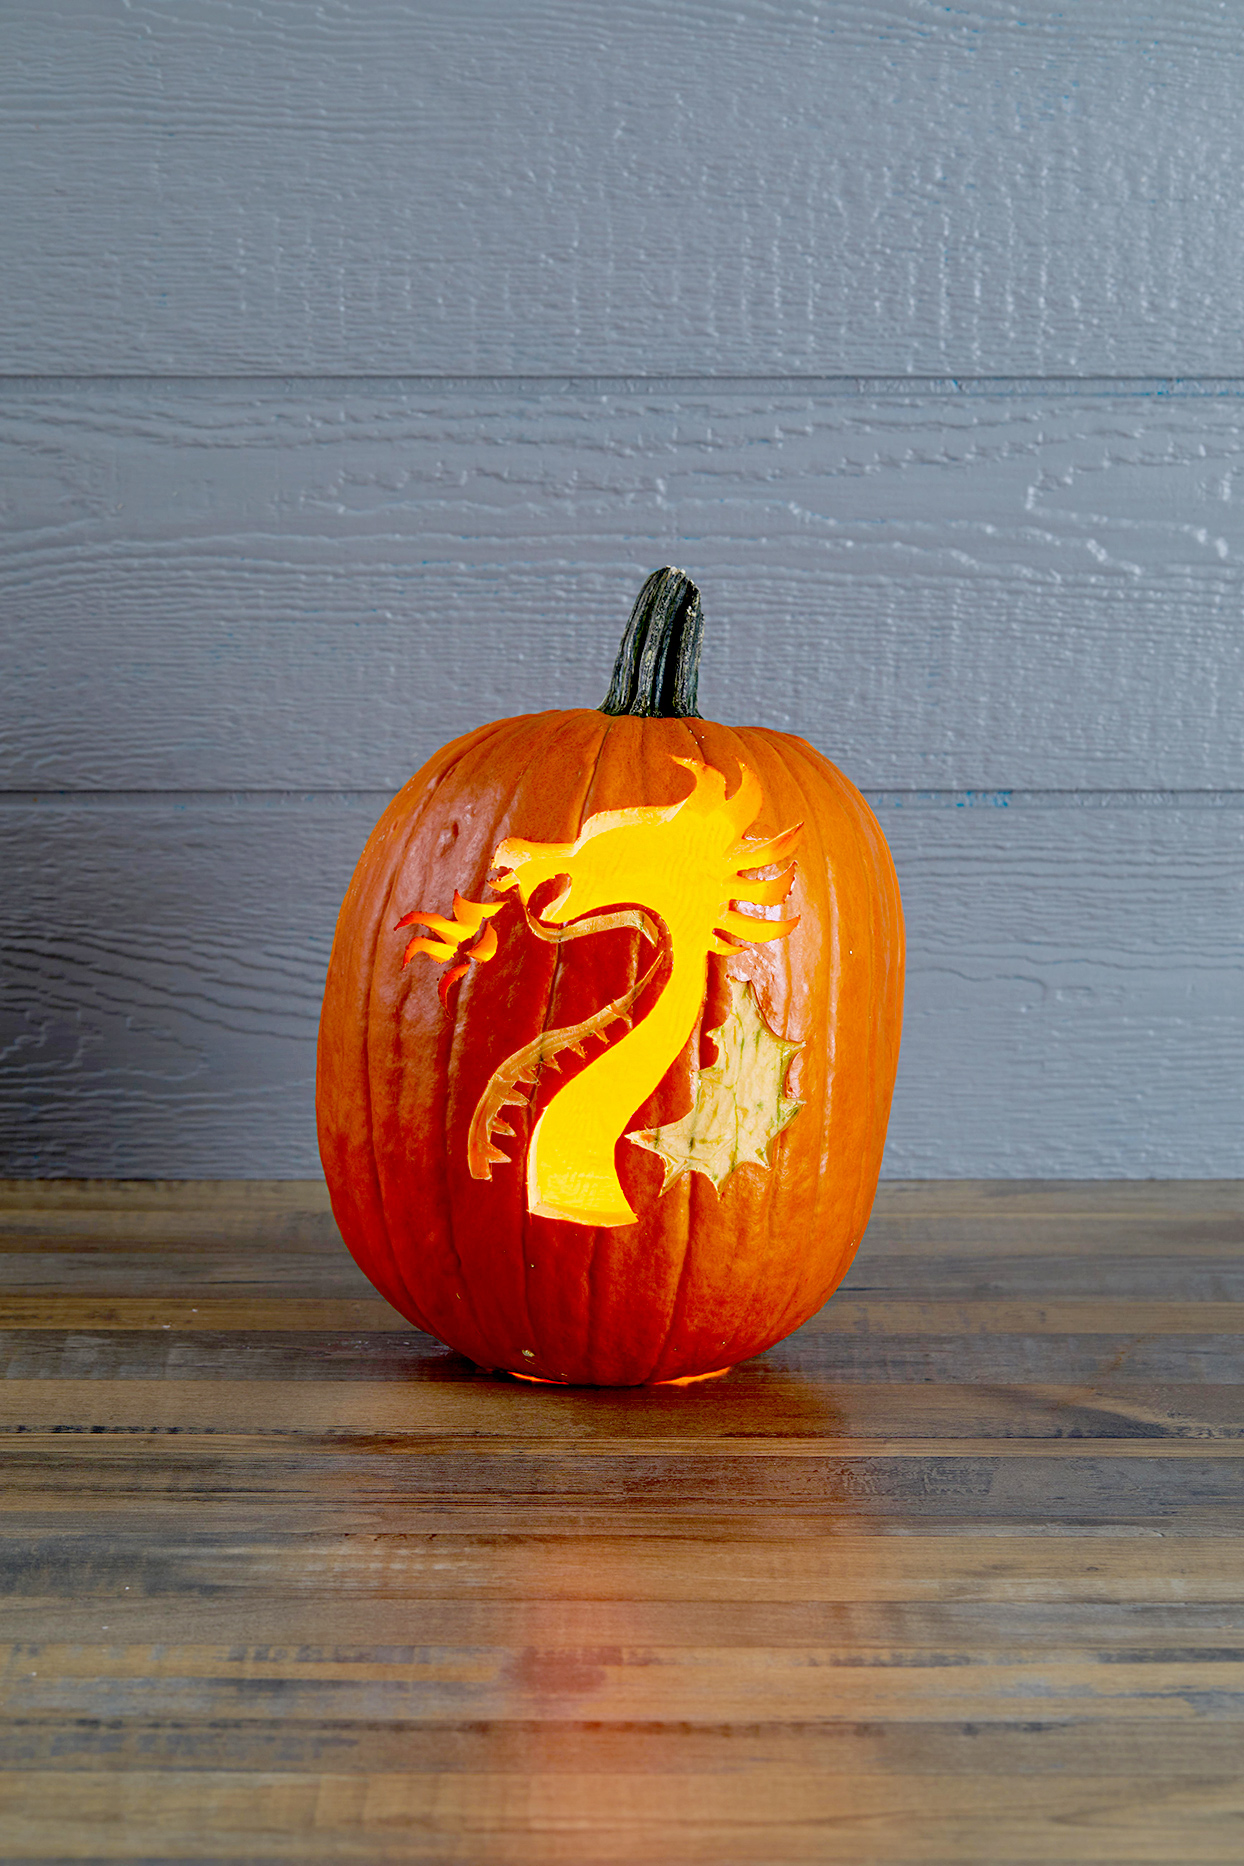 Pumpkin with dragon carving